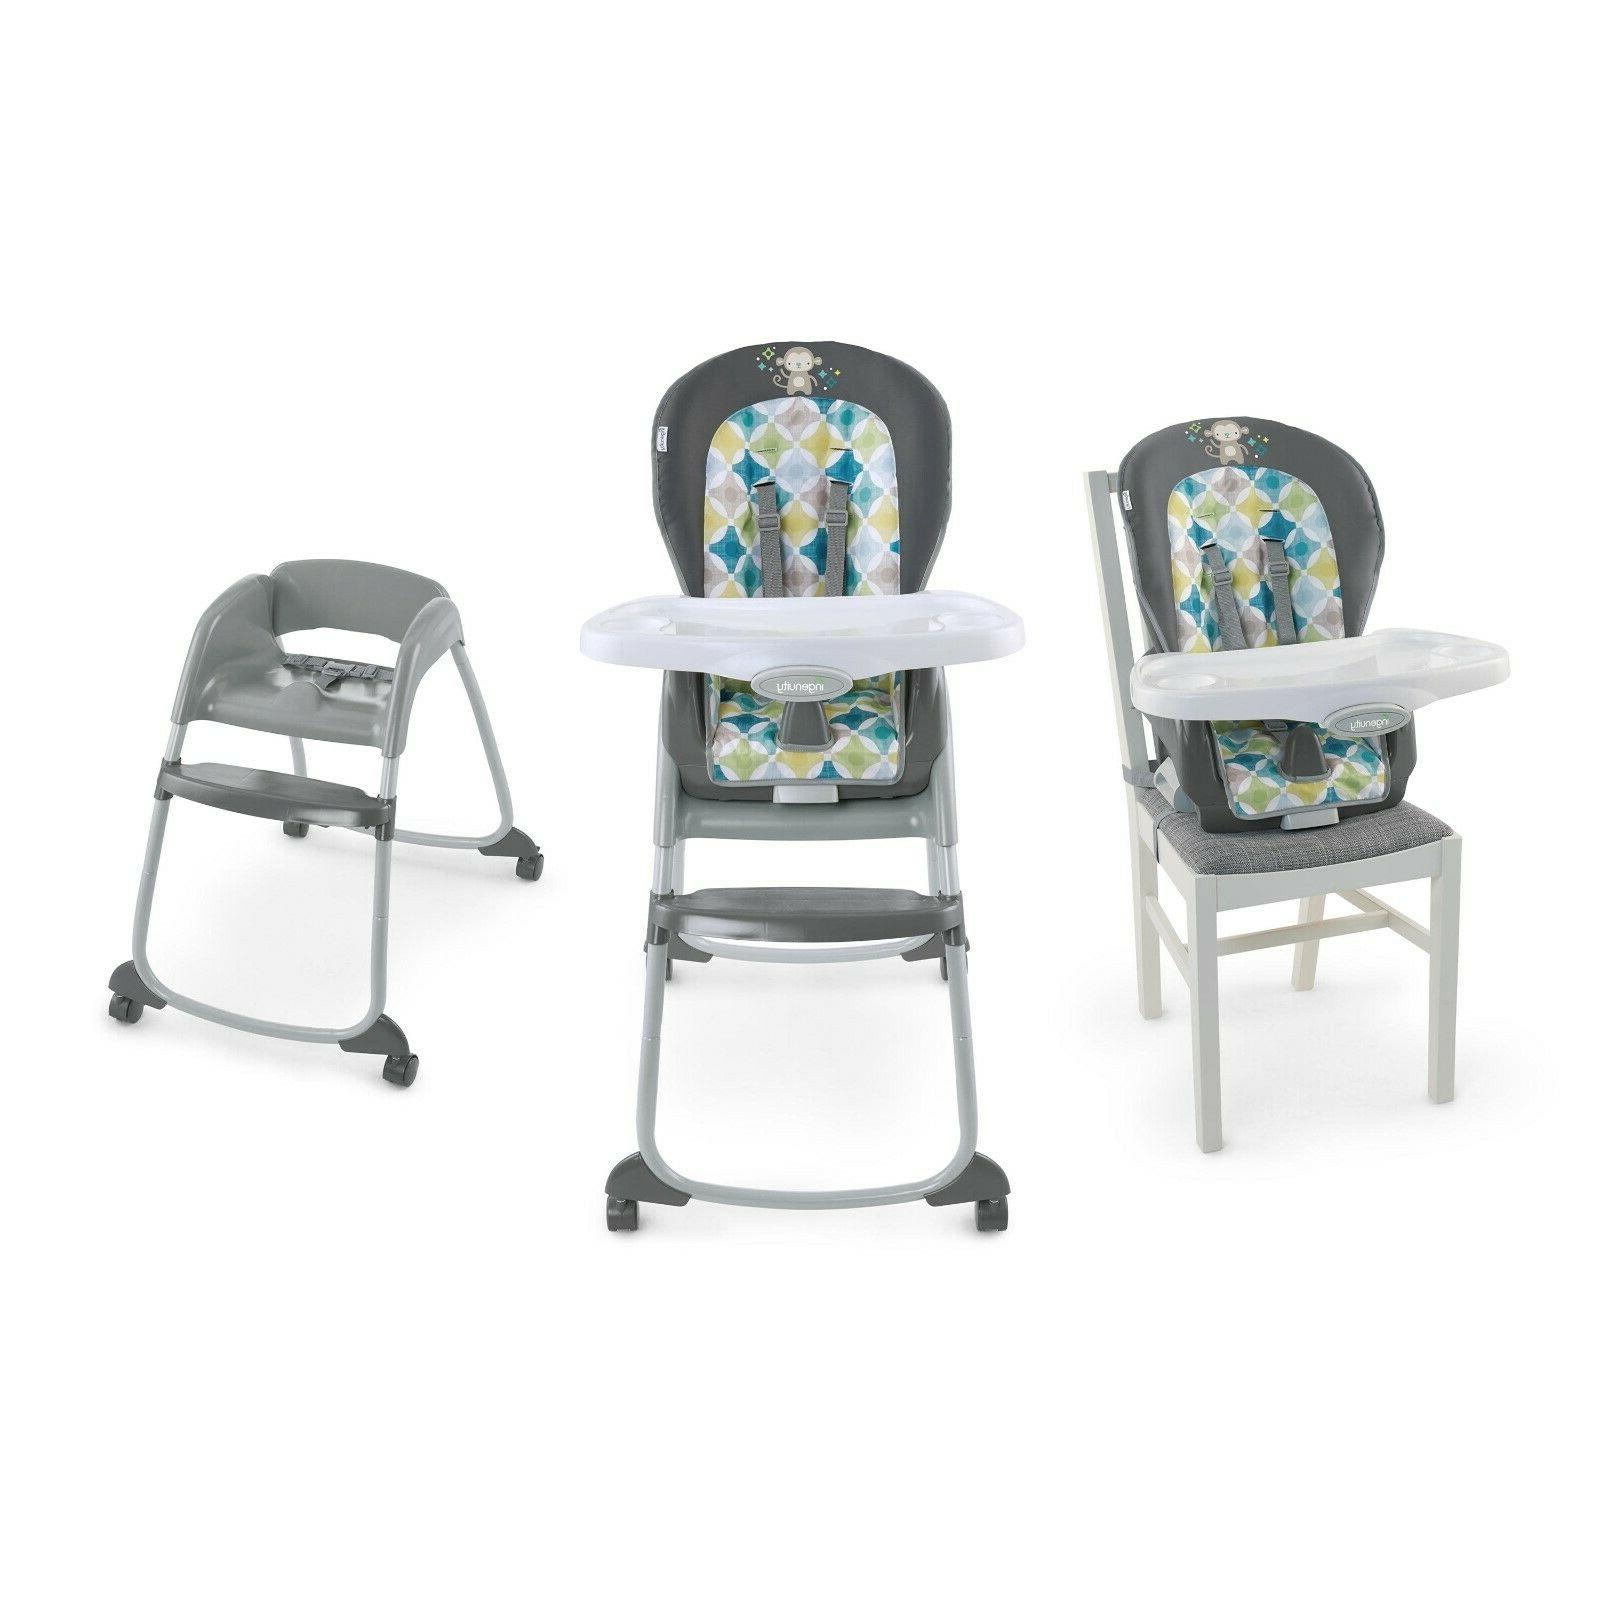 trio 3 in 1 high chair toddler